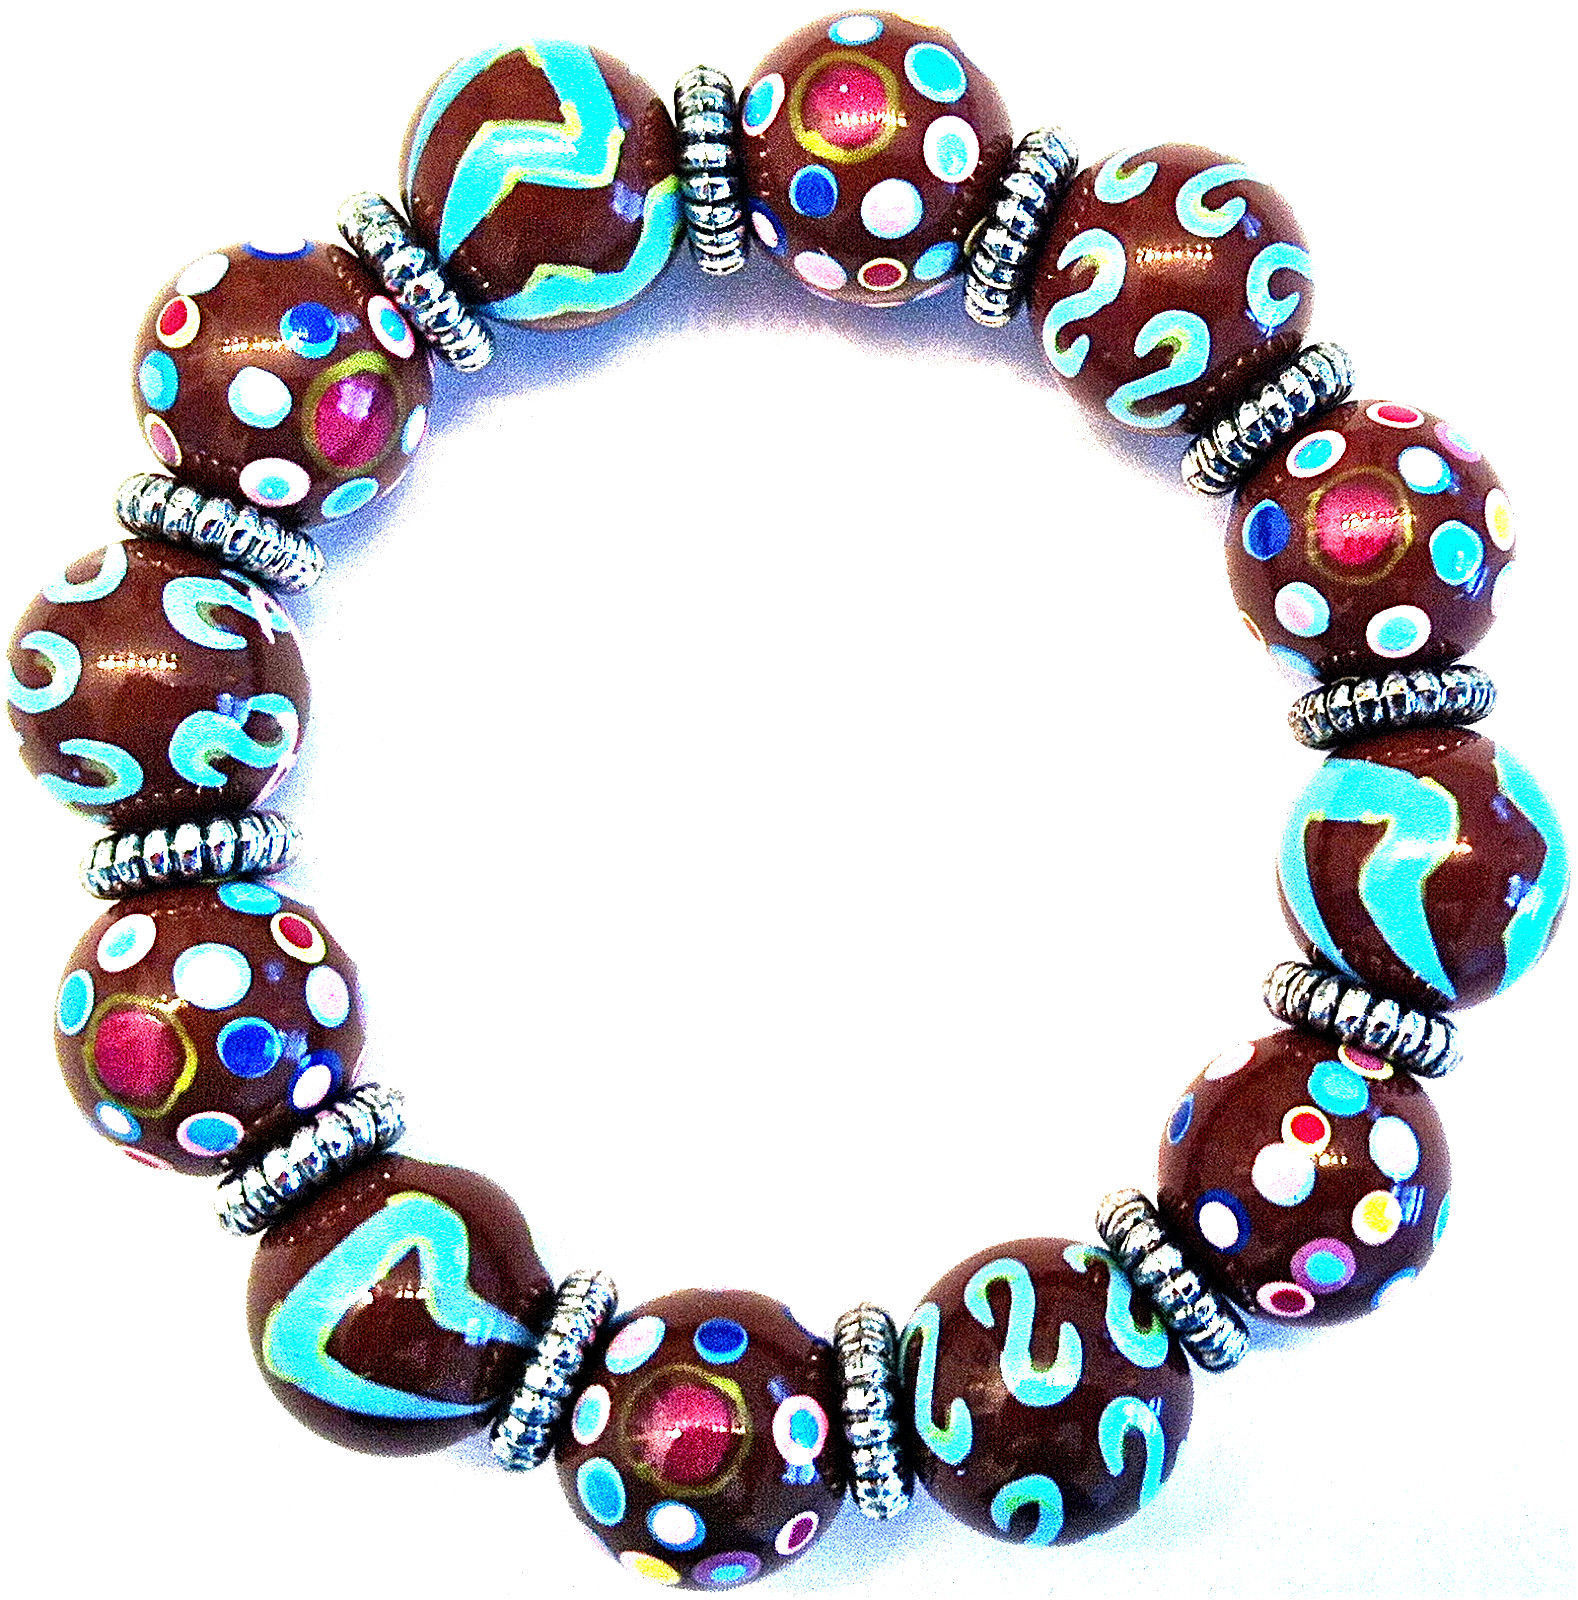 NEW ANGELA MOORE BROWN TEAL PINK BRACELET SILVER SPACERS POLKO DOTS & STRIPES